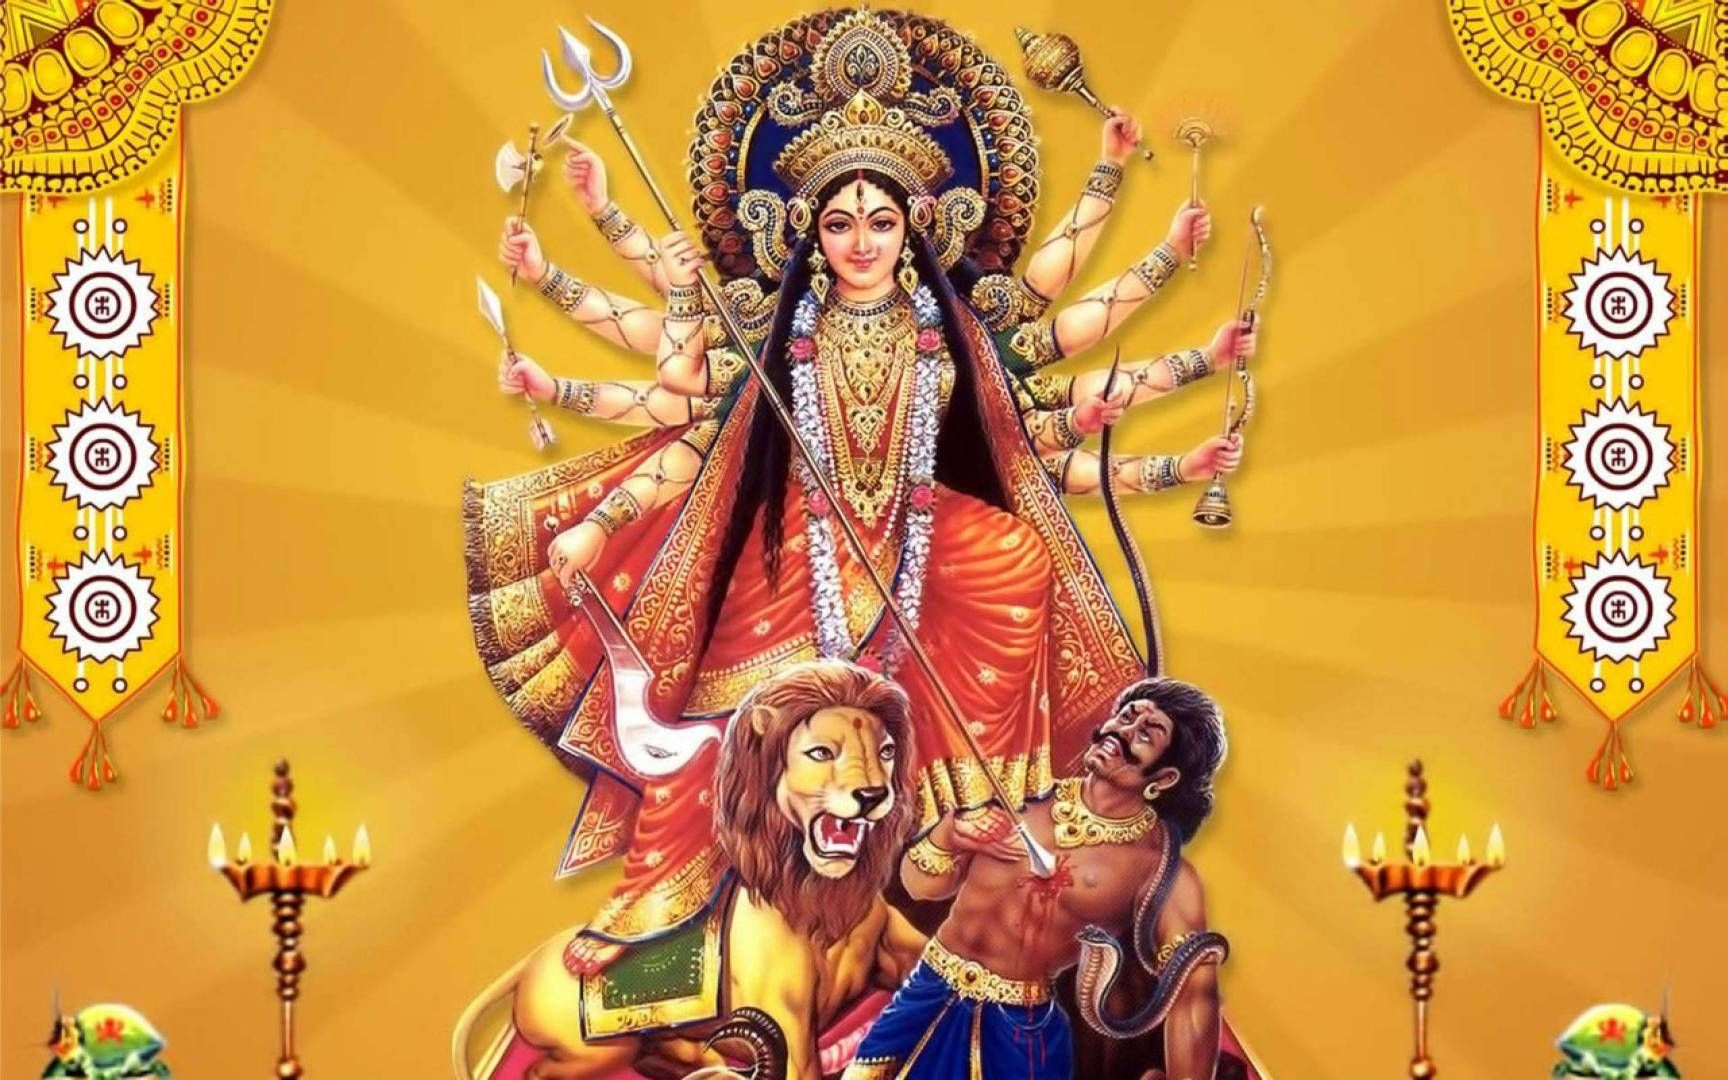 Happy Navratri Maa Durga And Ambe Hd Wallpapers Is A High Resolution Desktop Wallpaper Posted In Happy Navratri Category Free Dow Durga Maa Durga Durga Images